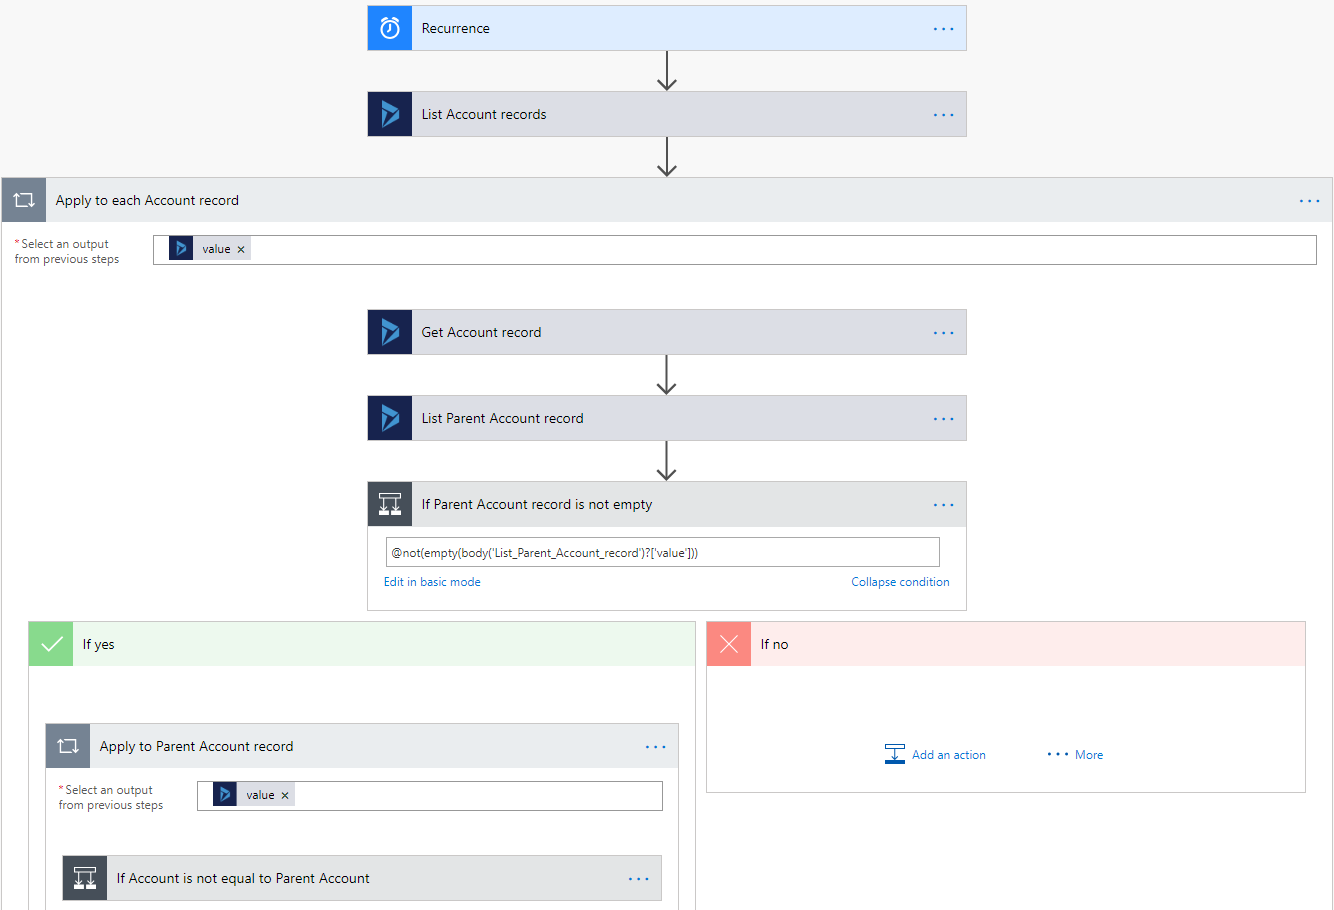 Create Account hierarchy in Dynamics 365 CE with Flow, based